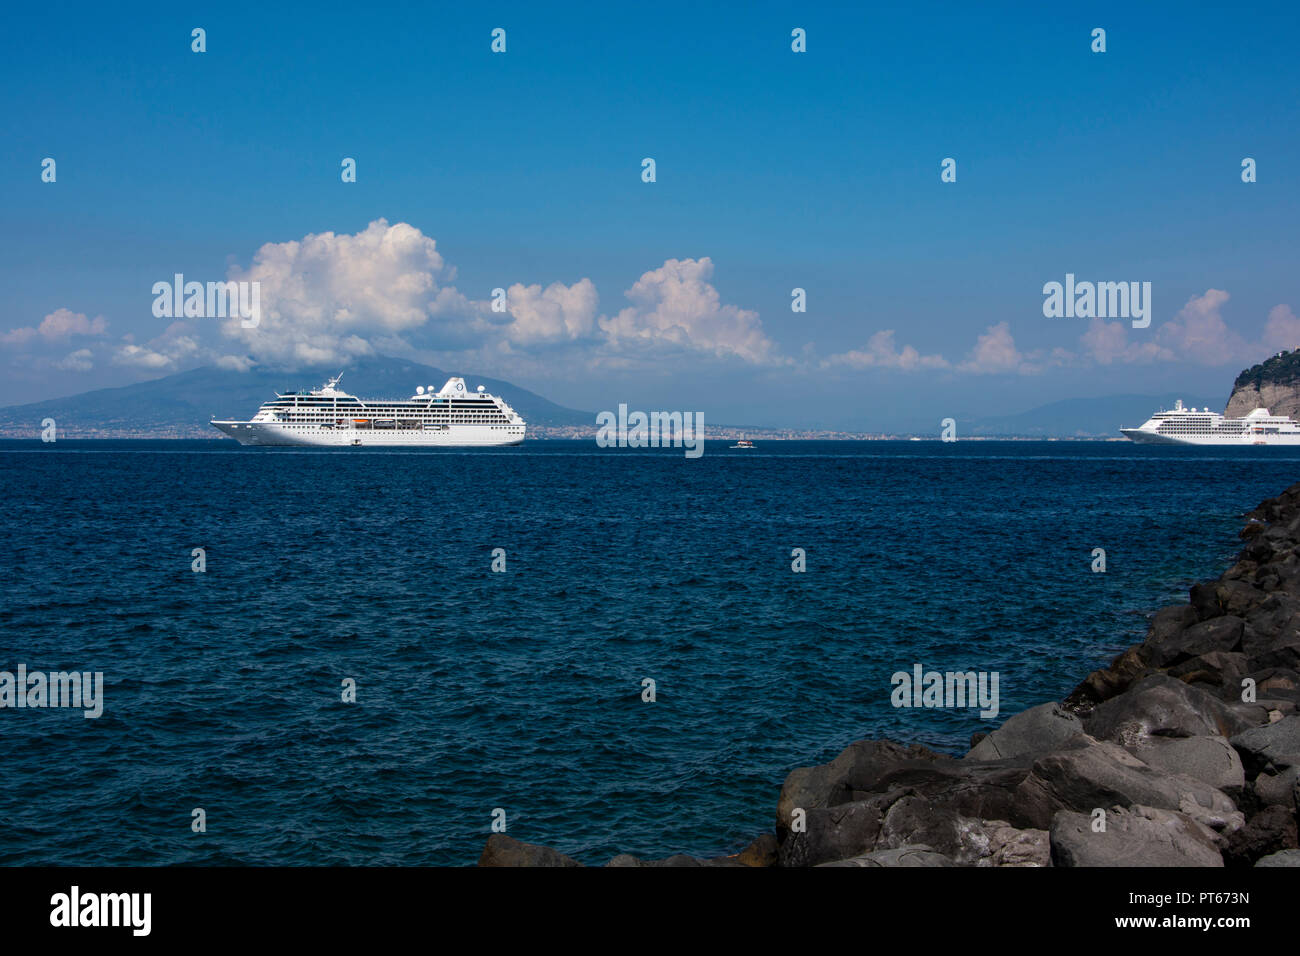 cruise ships moored off the coast of the town of sorrento Italy with mount Vesuvius in the background - Stock Image